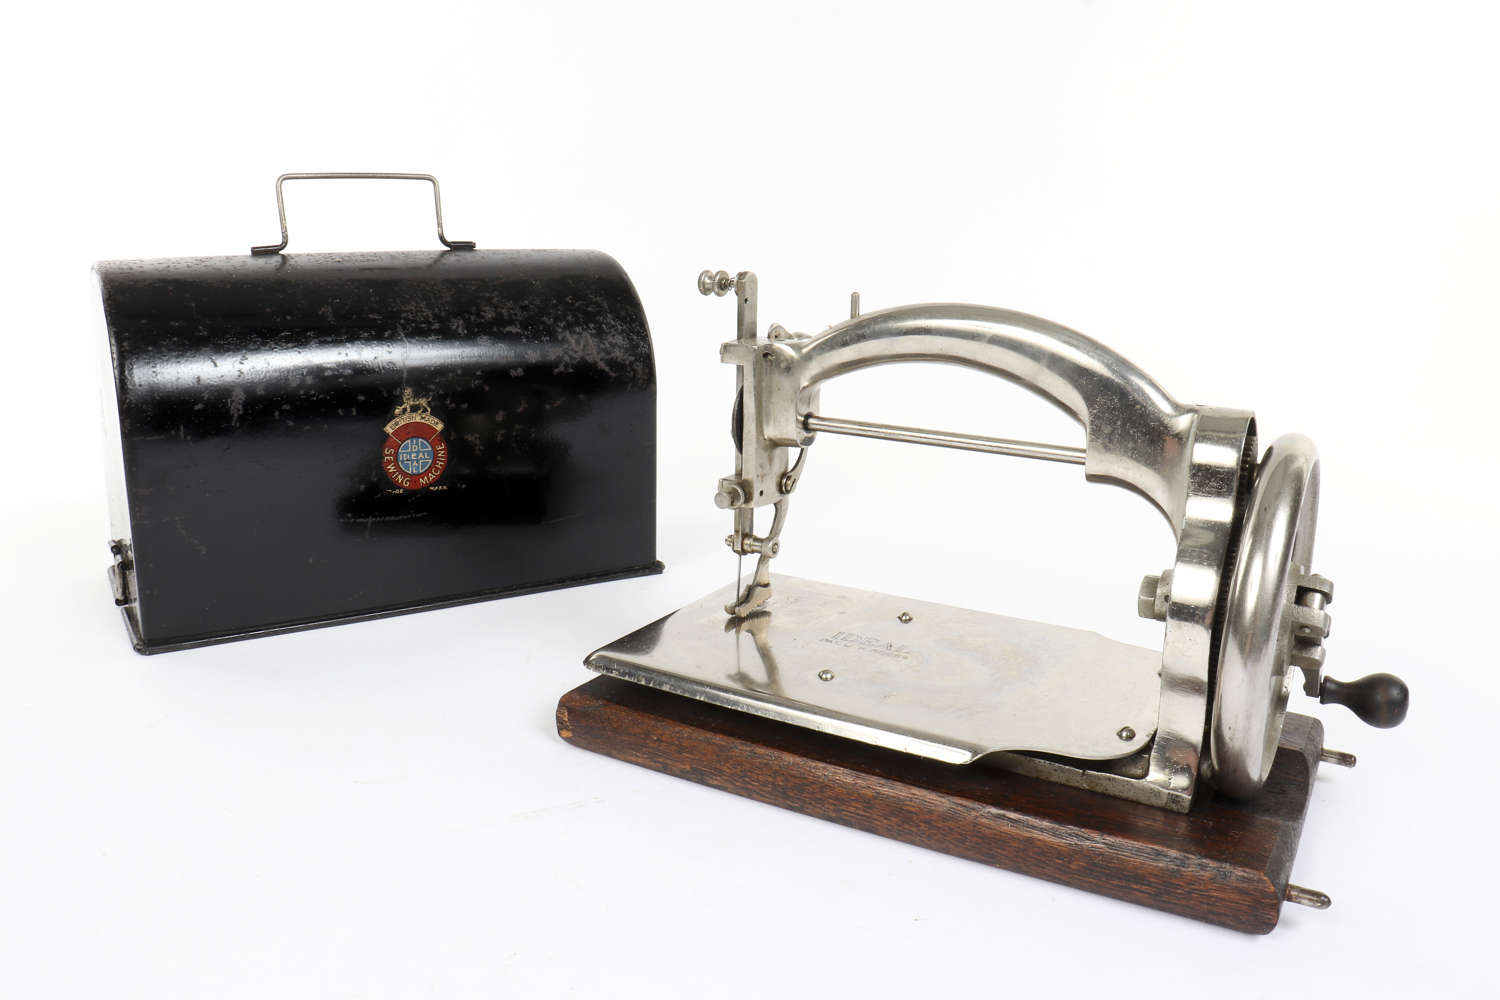 The 'Ideal' sewing machine